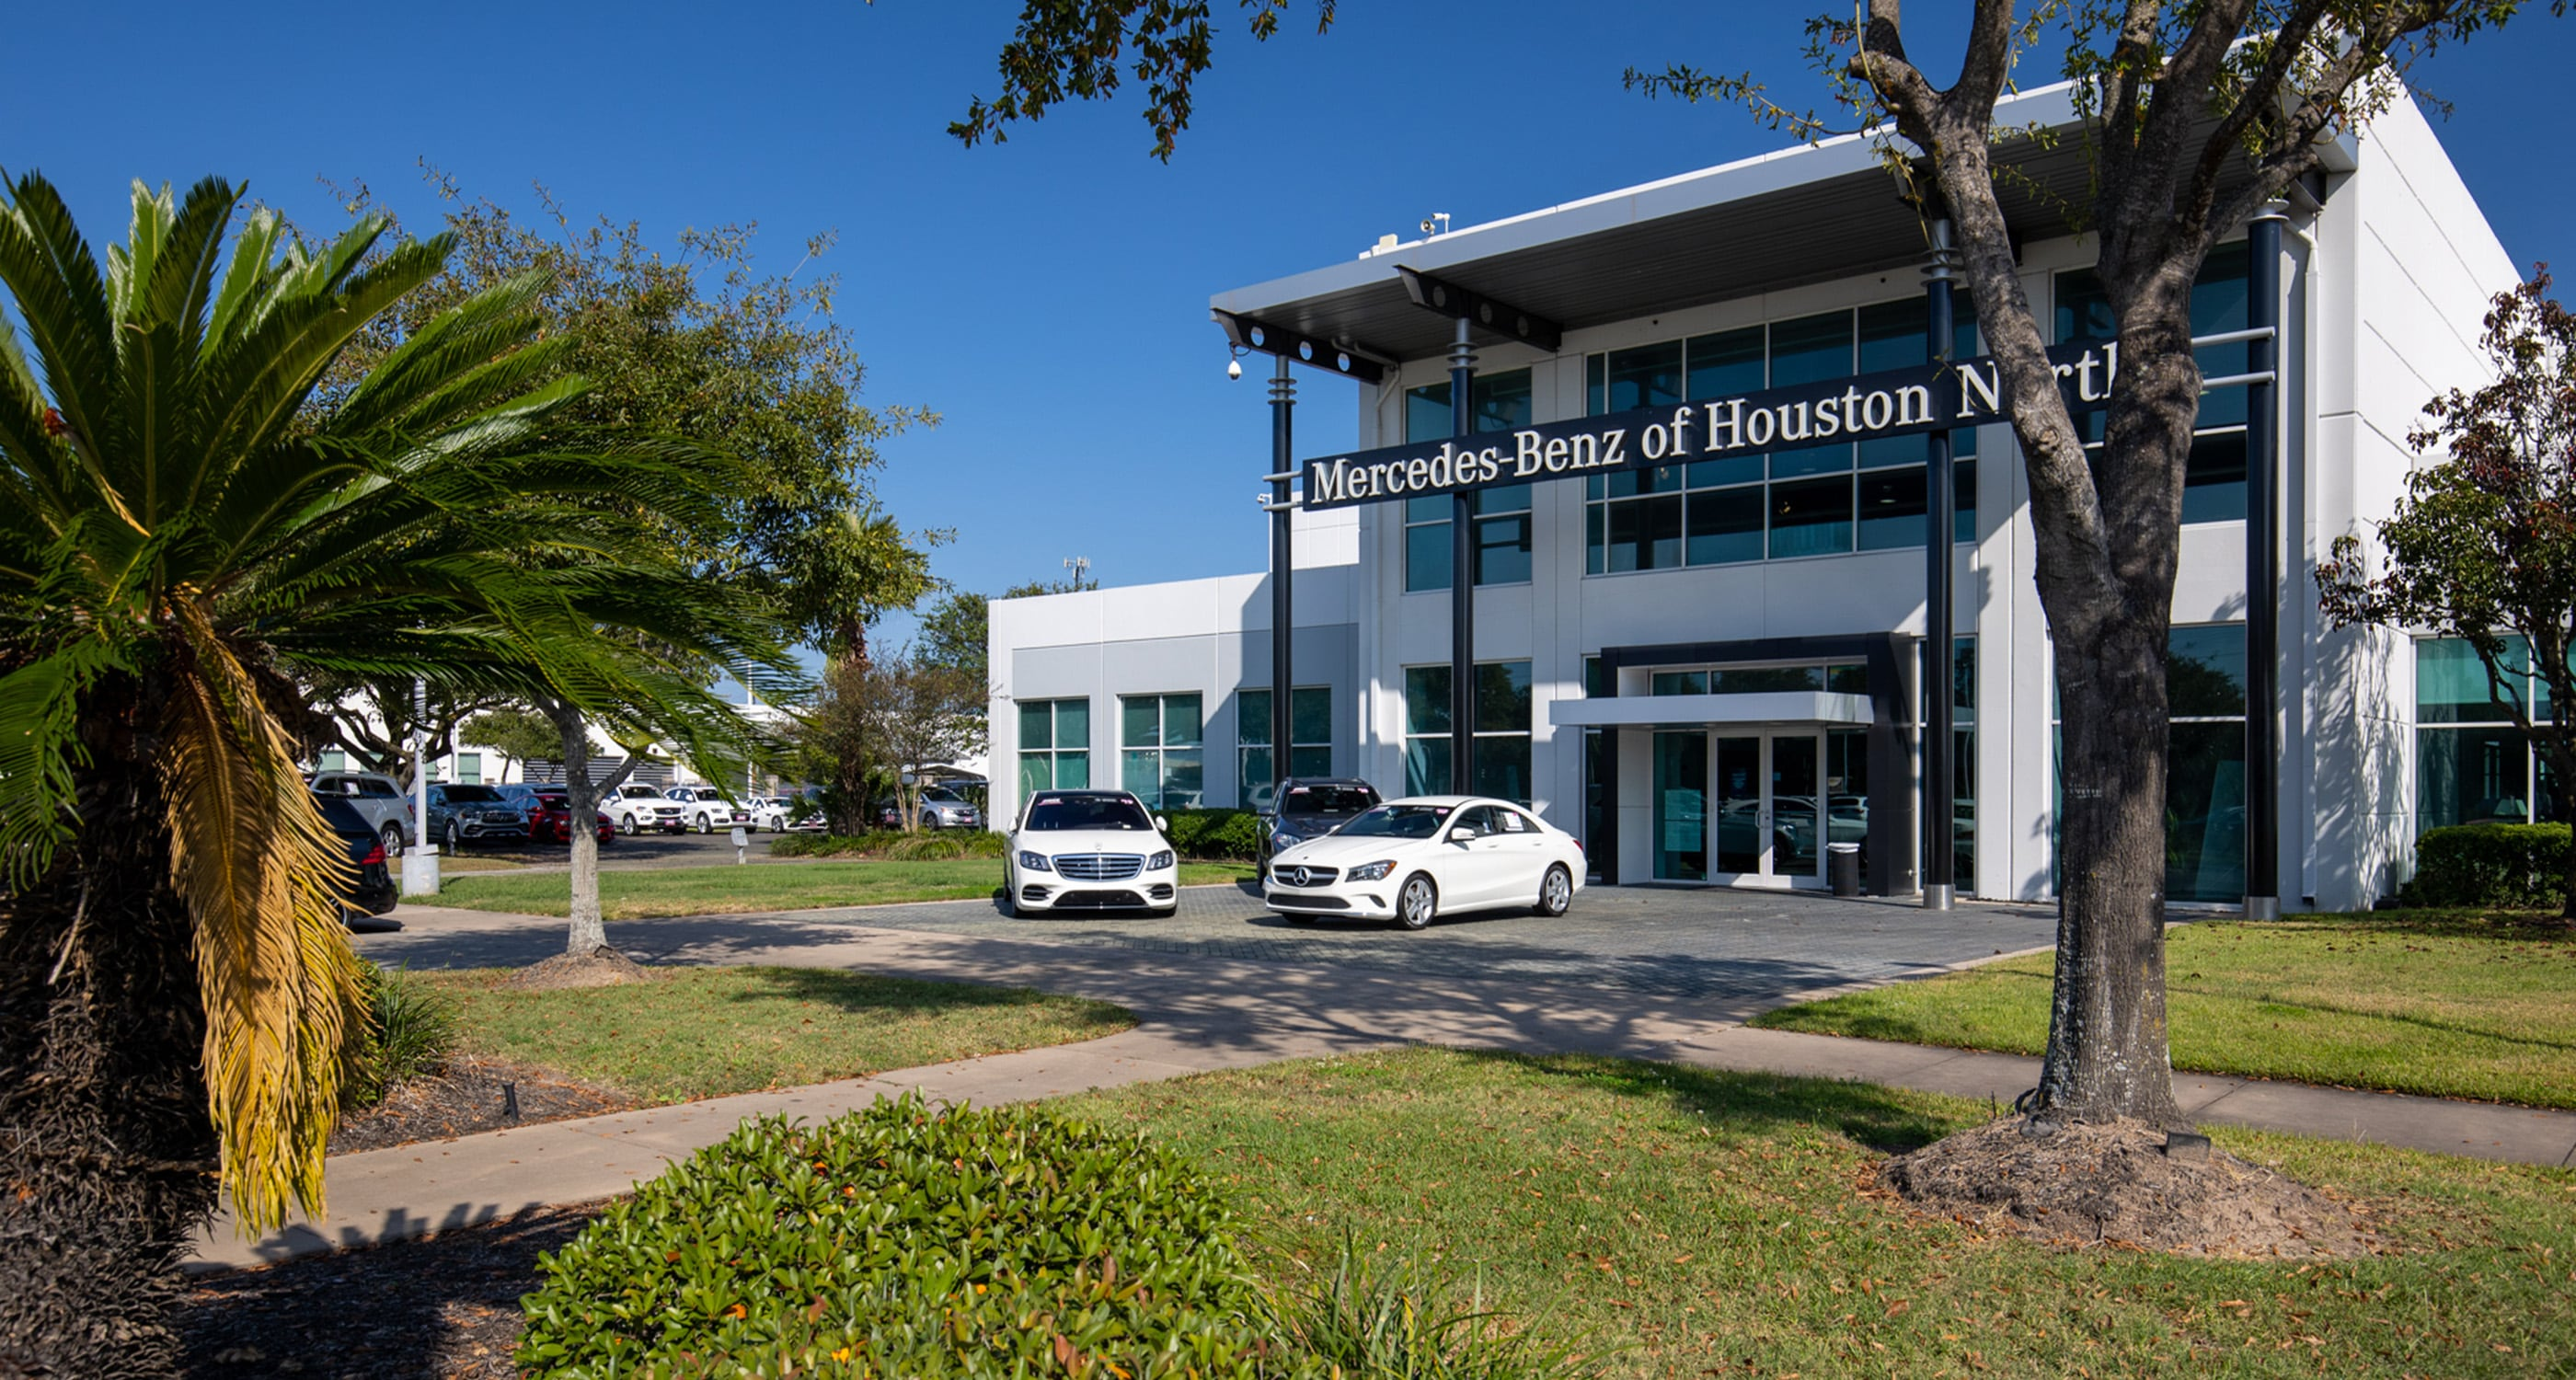 Outside view of Mercedes-Benz of Houston North